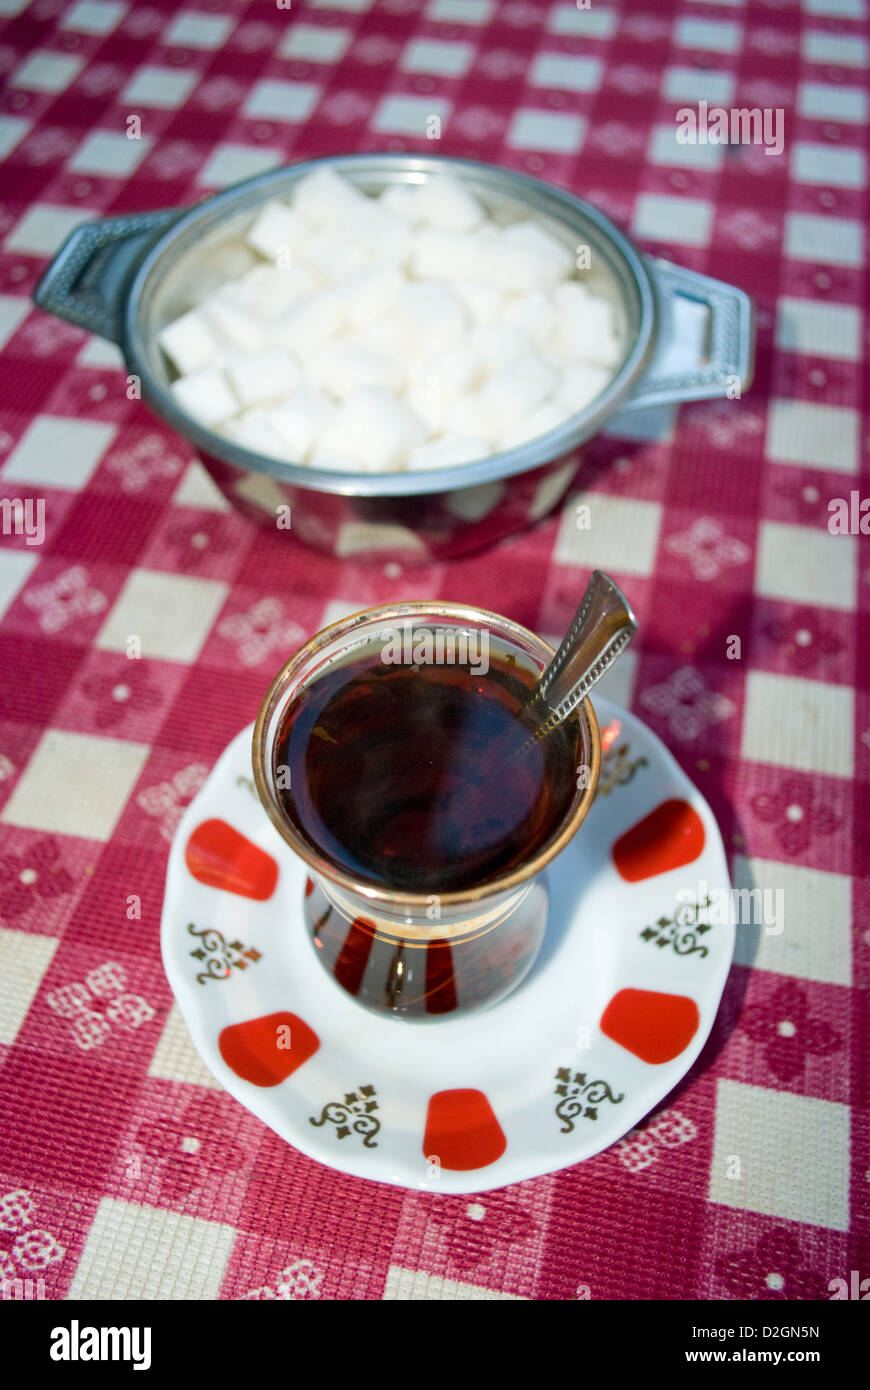 Turkish tea or çay, pronounced 'chai' traditionally served in a small tulip-shaped glasses without milk. Stock Photo